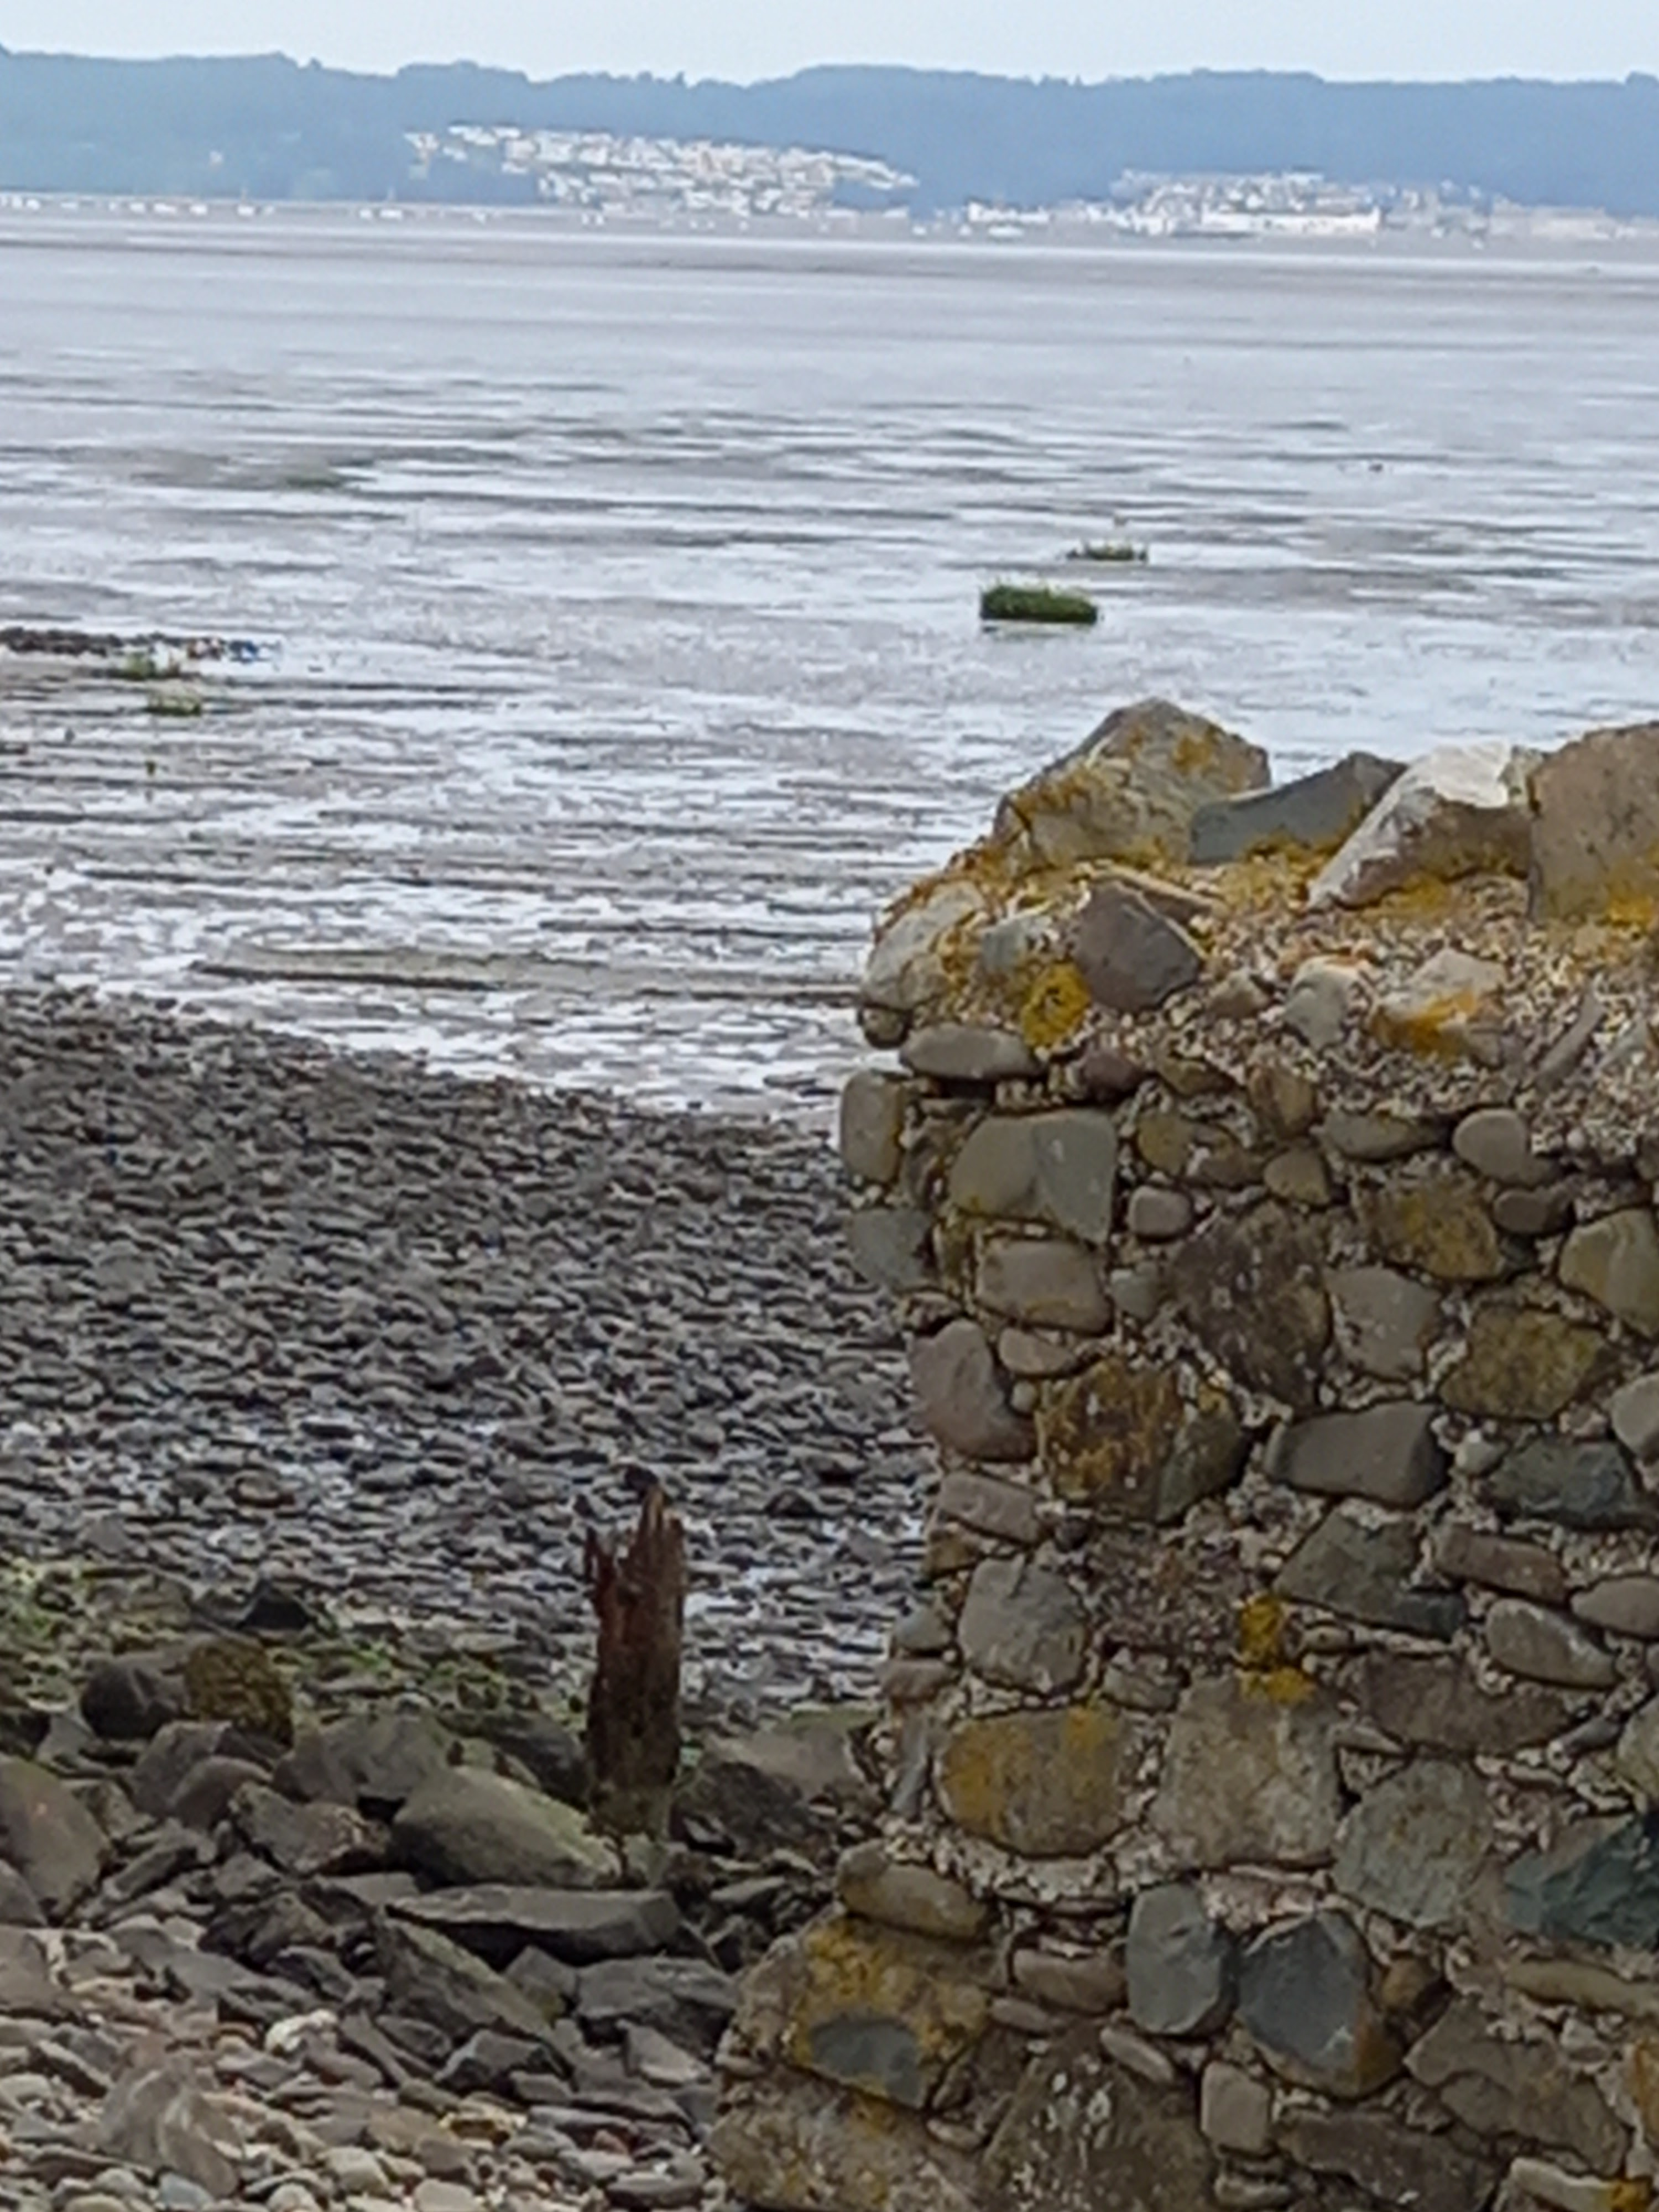 Picture of a broken wall and pebbled beach looking across water to a town and island. Taken by Diane Woodrow